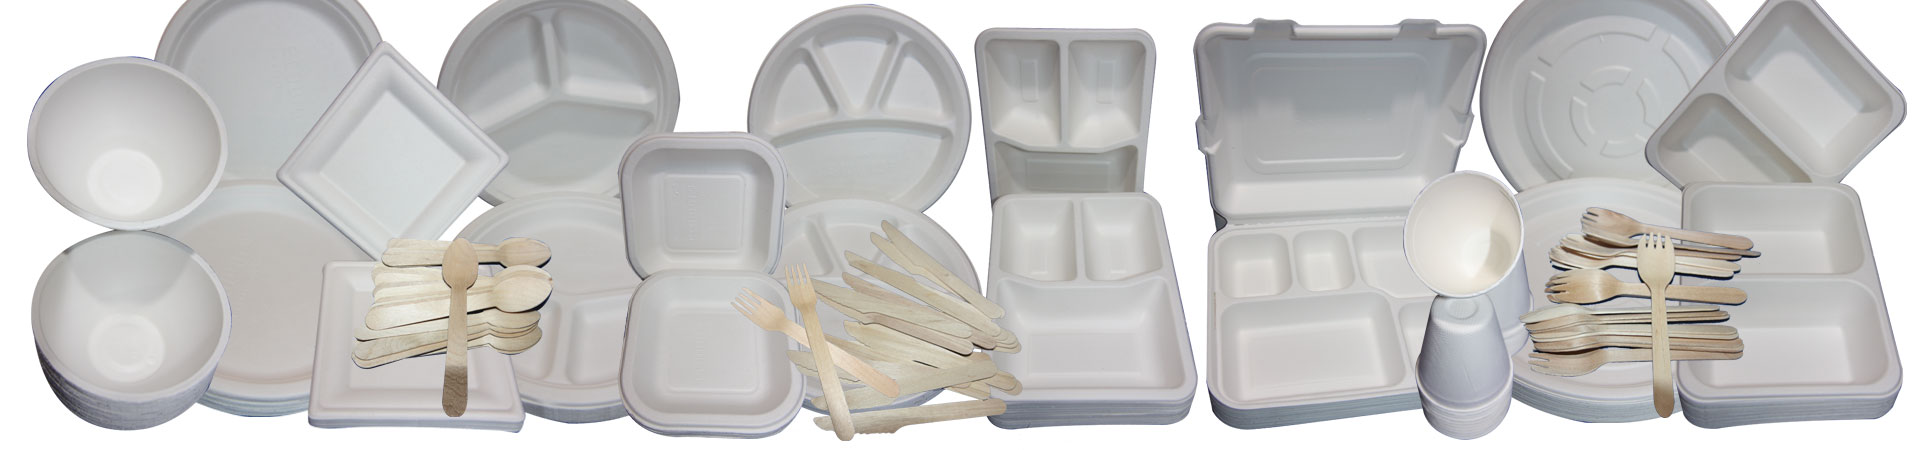 recycled food packaging and tableware